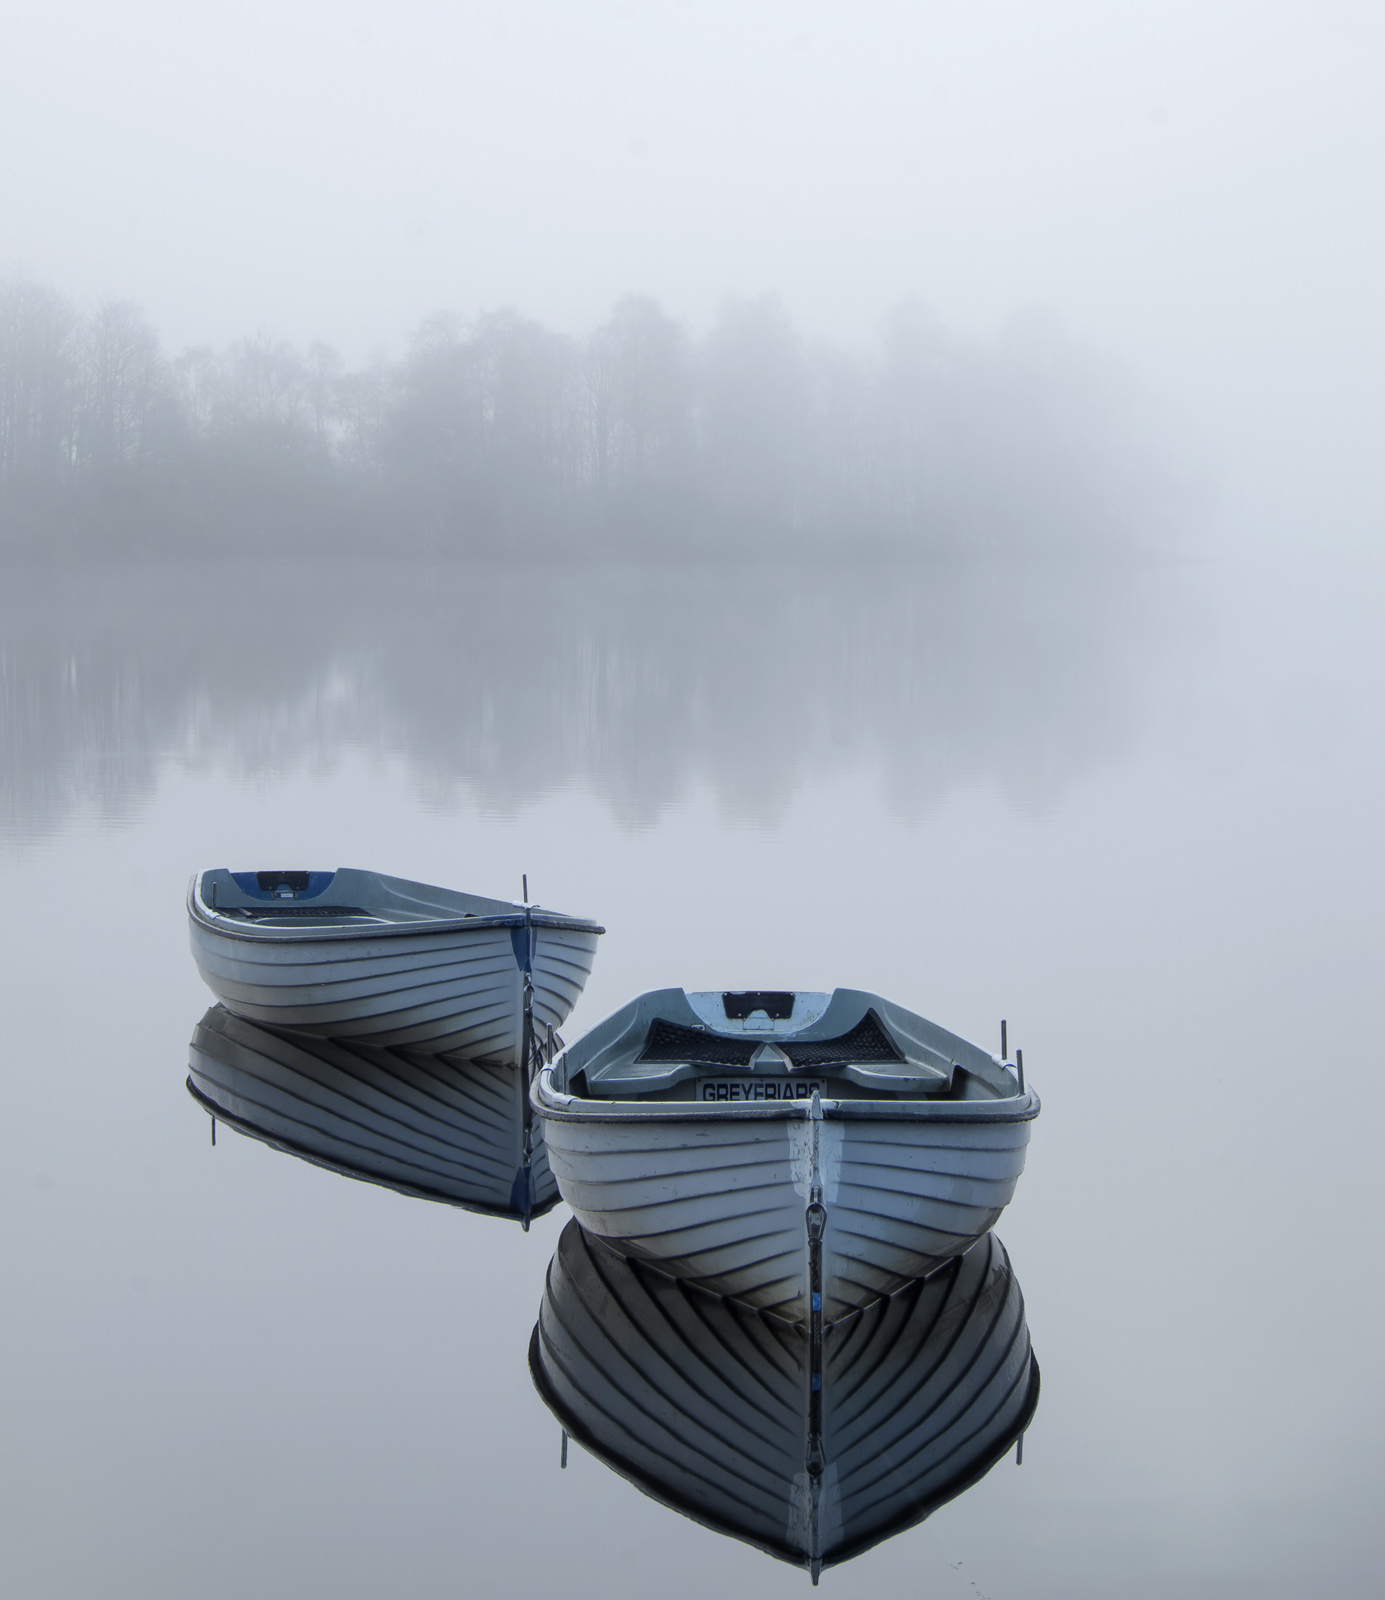 Adrift Rusky, Loch Rusky, Trossachs, Scotland, separated, boats, delicate, line, silhouetted, trees, reflected, orientat, photo